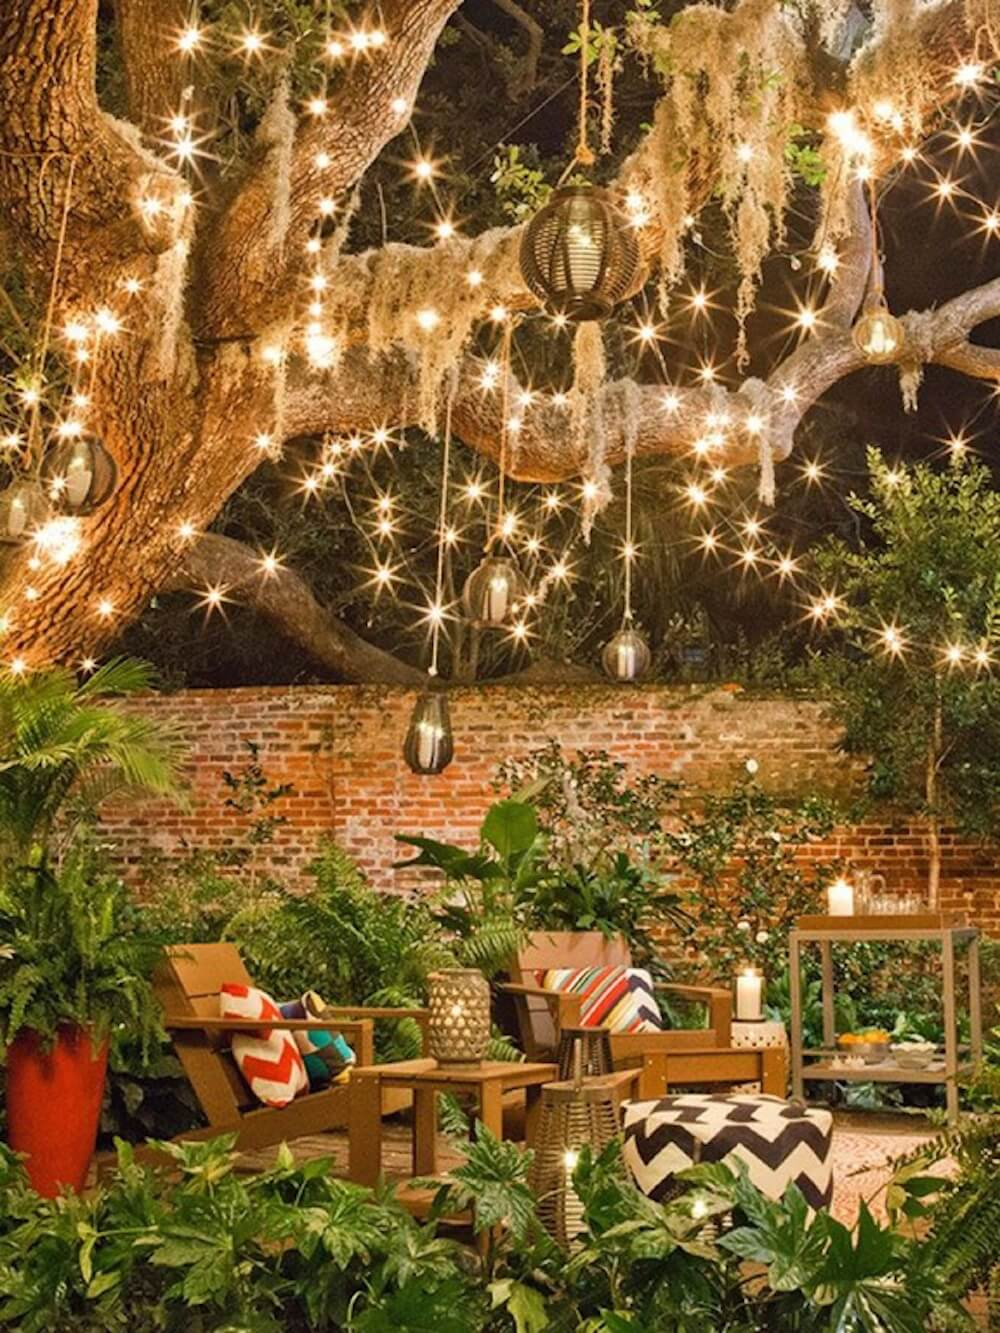 Hanging lights can feel almost magical, like stardust or fireflies are dangling over your garden. It can transform your space from garden to fairytale with the flick of a switch. This would be an amazing place to escape to after the sun sets.